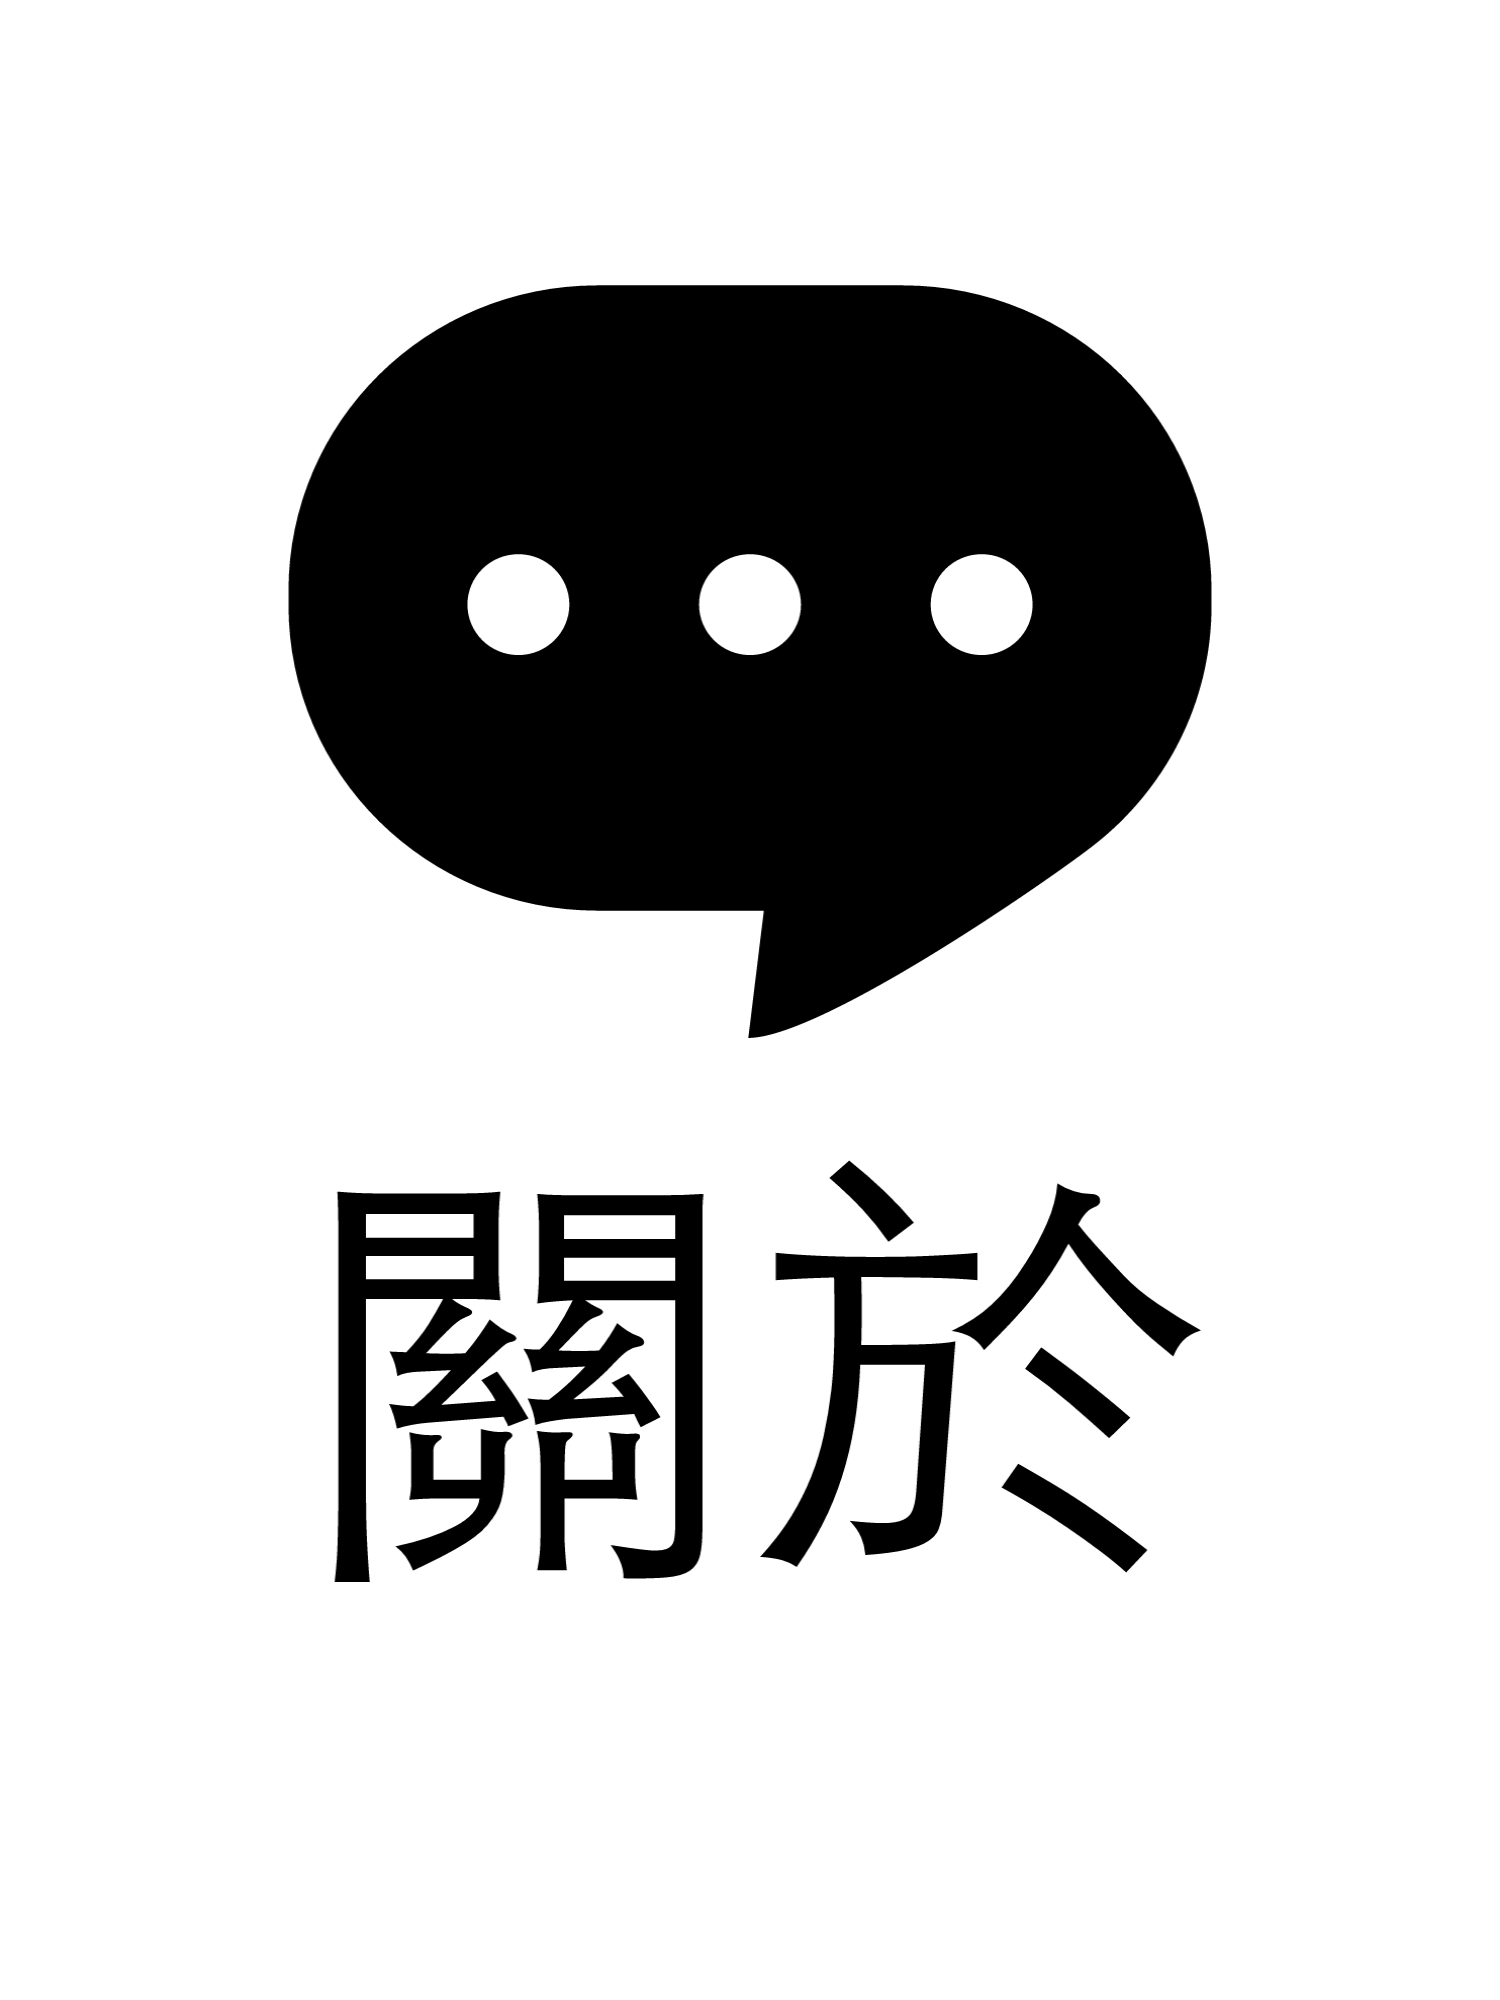 About-logo-black.png